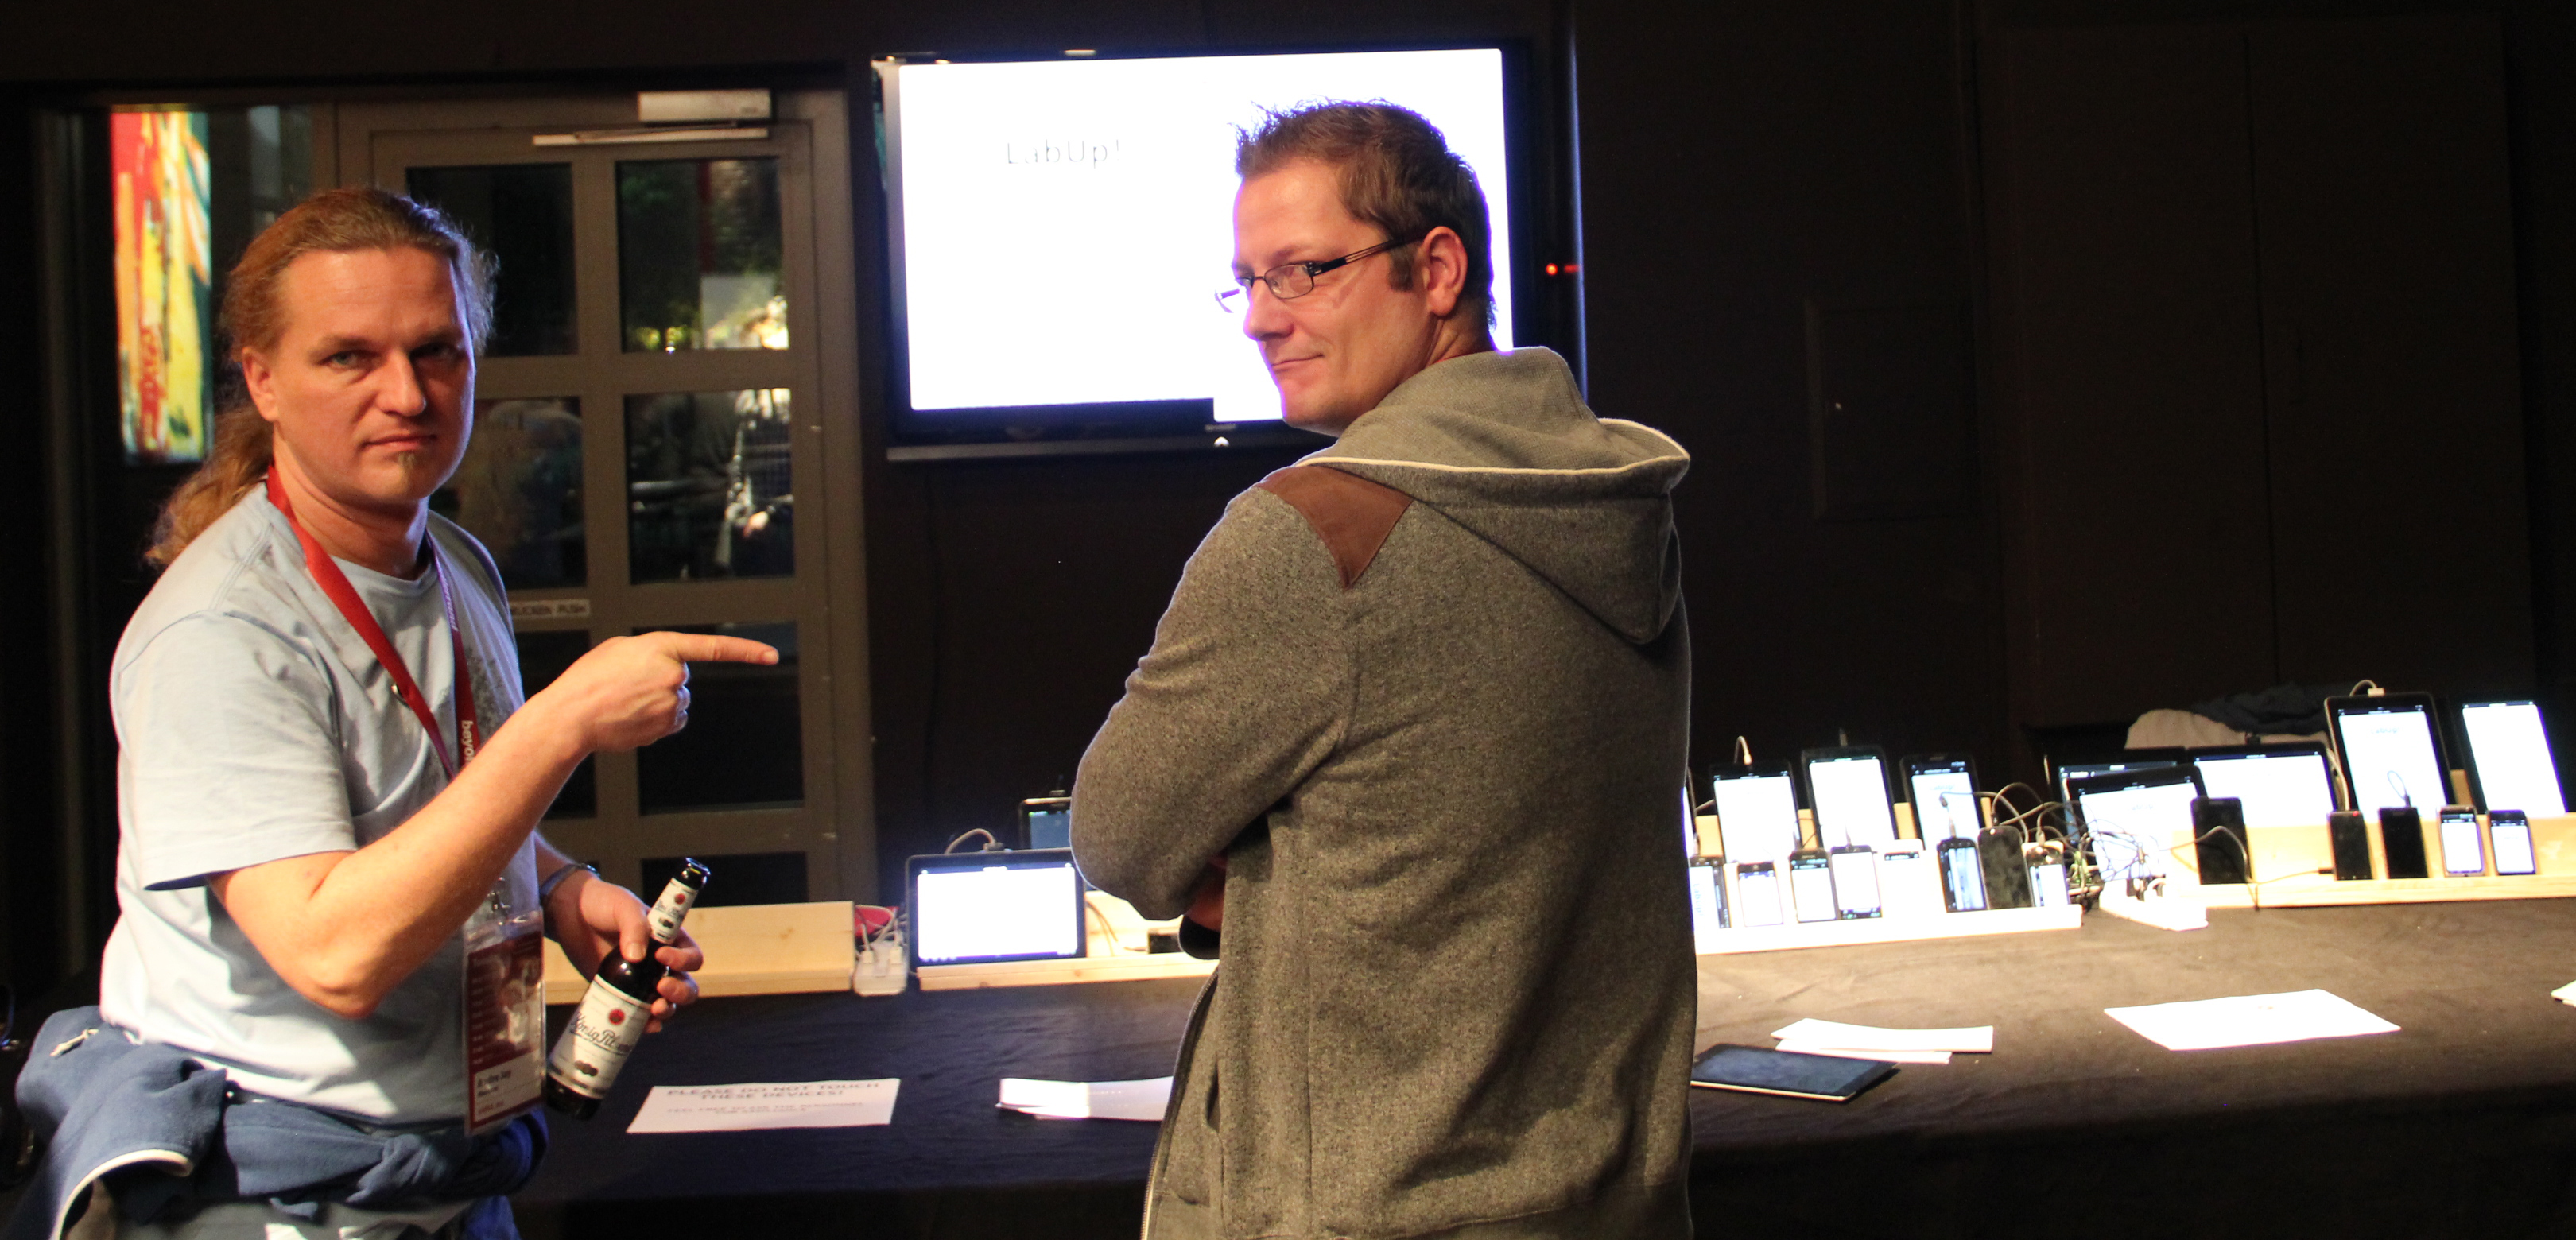 Jay (@klick_ass) and Sven (@maddesigns) at the @btconf-ODL